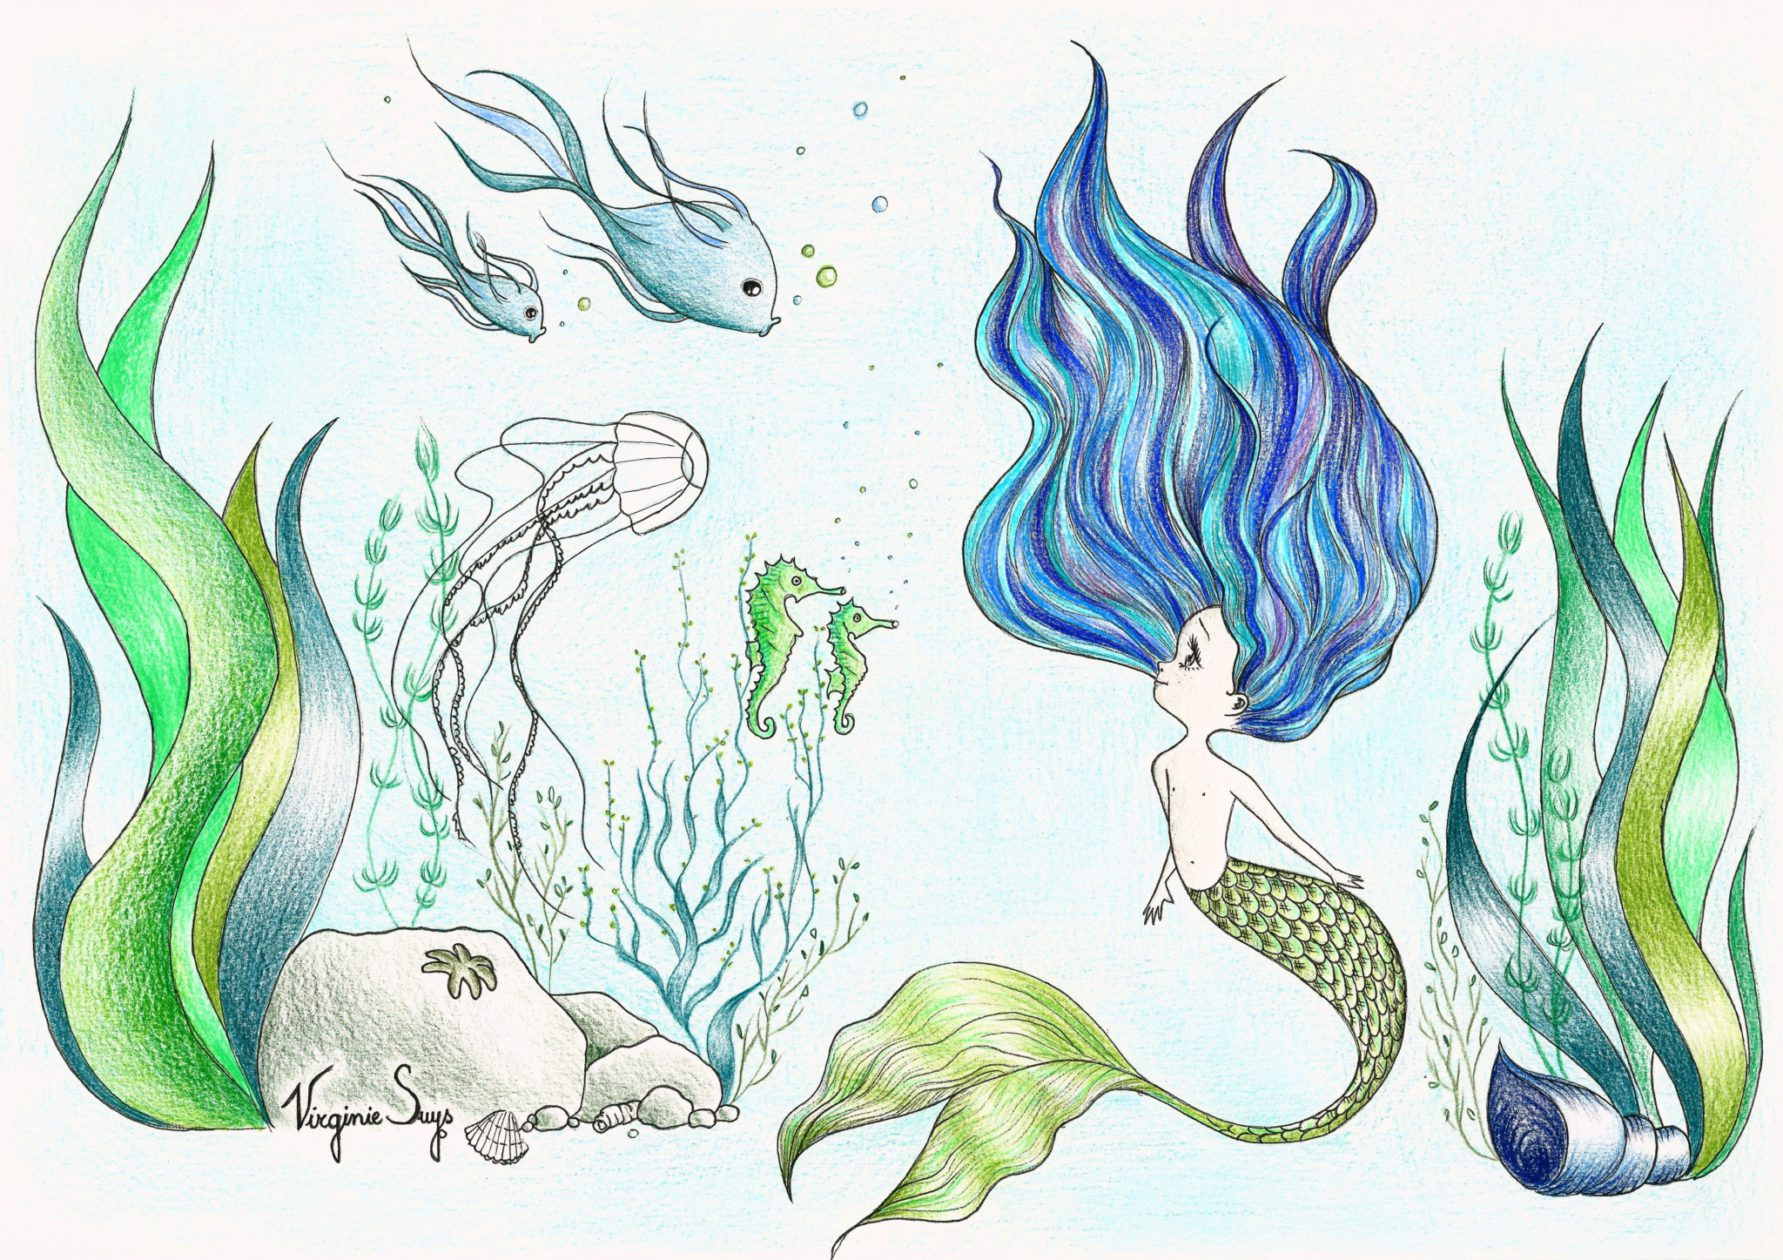 Virginie Suys mermaid in green & blue illustration